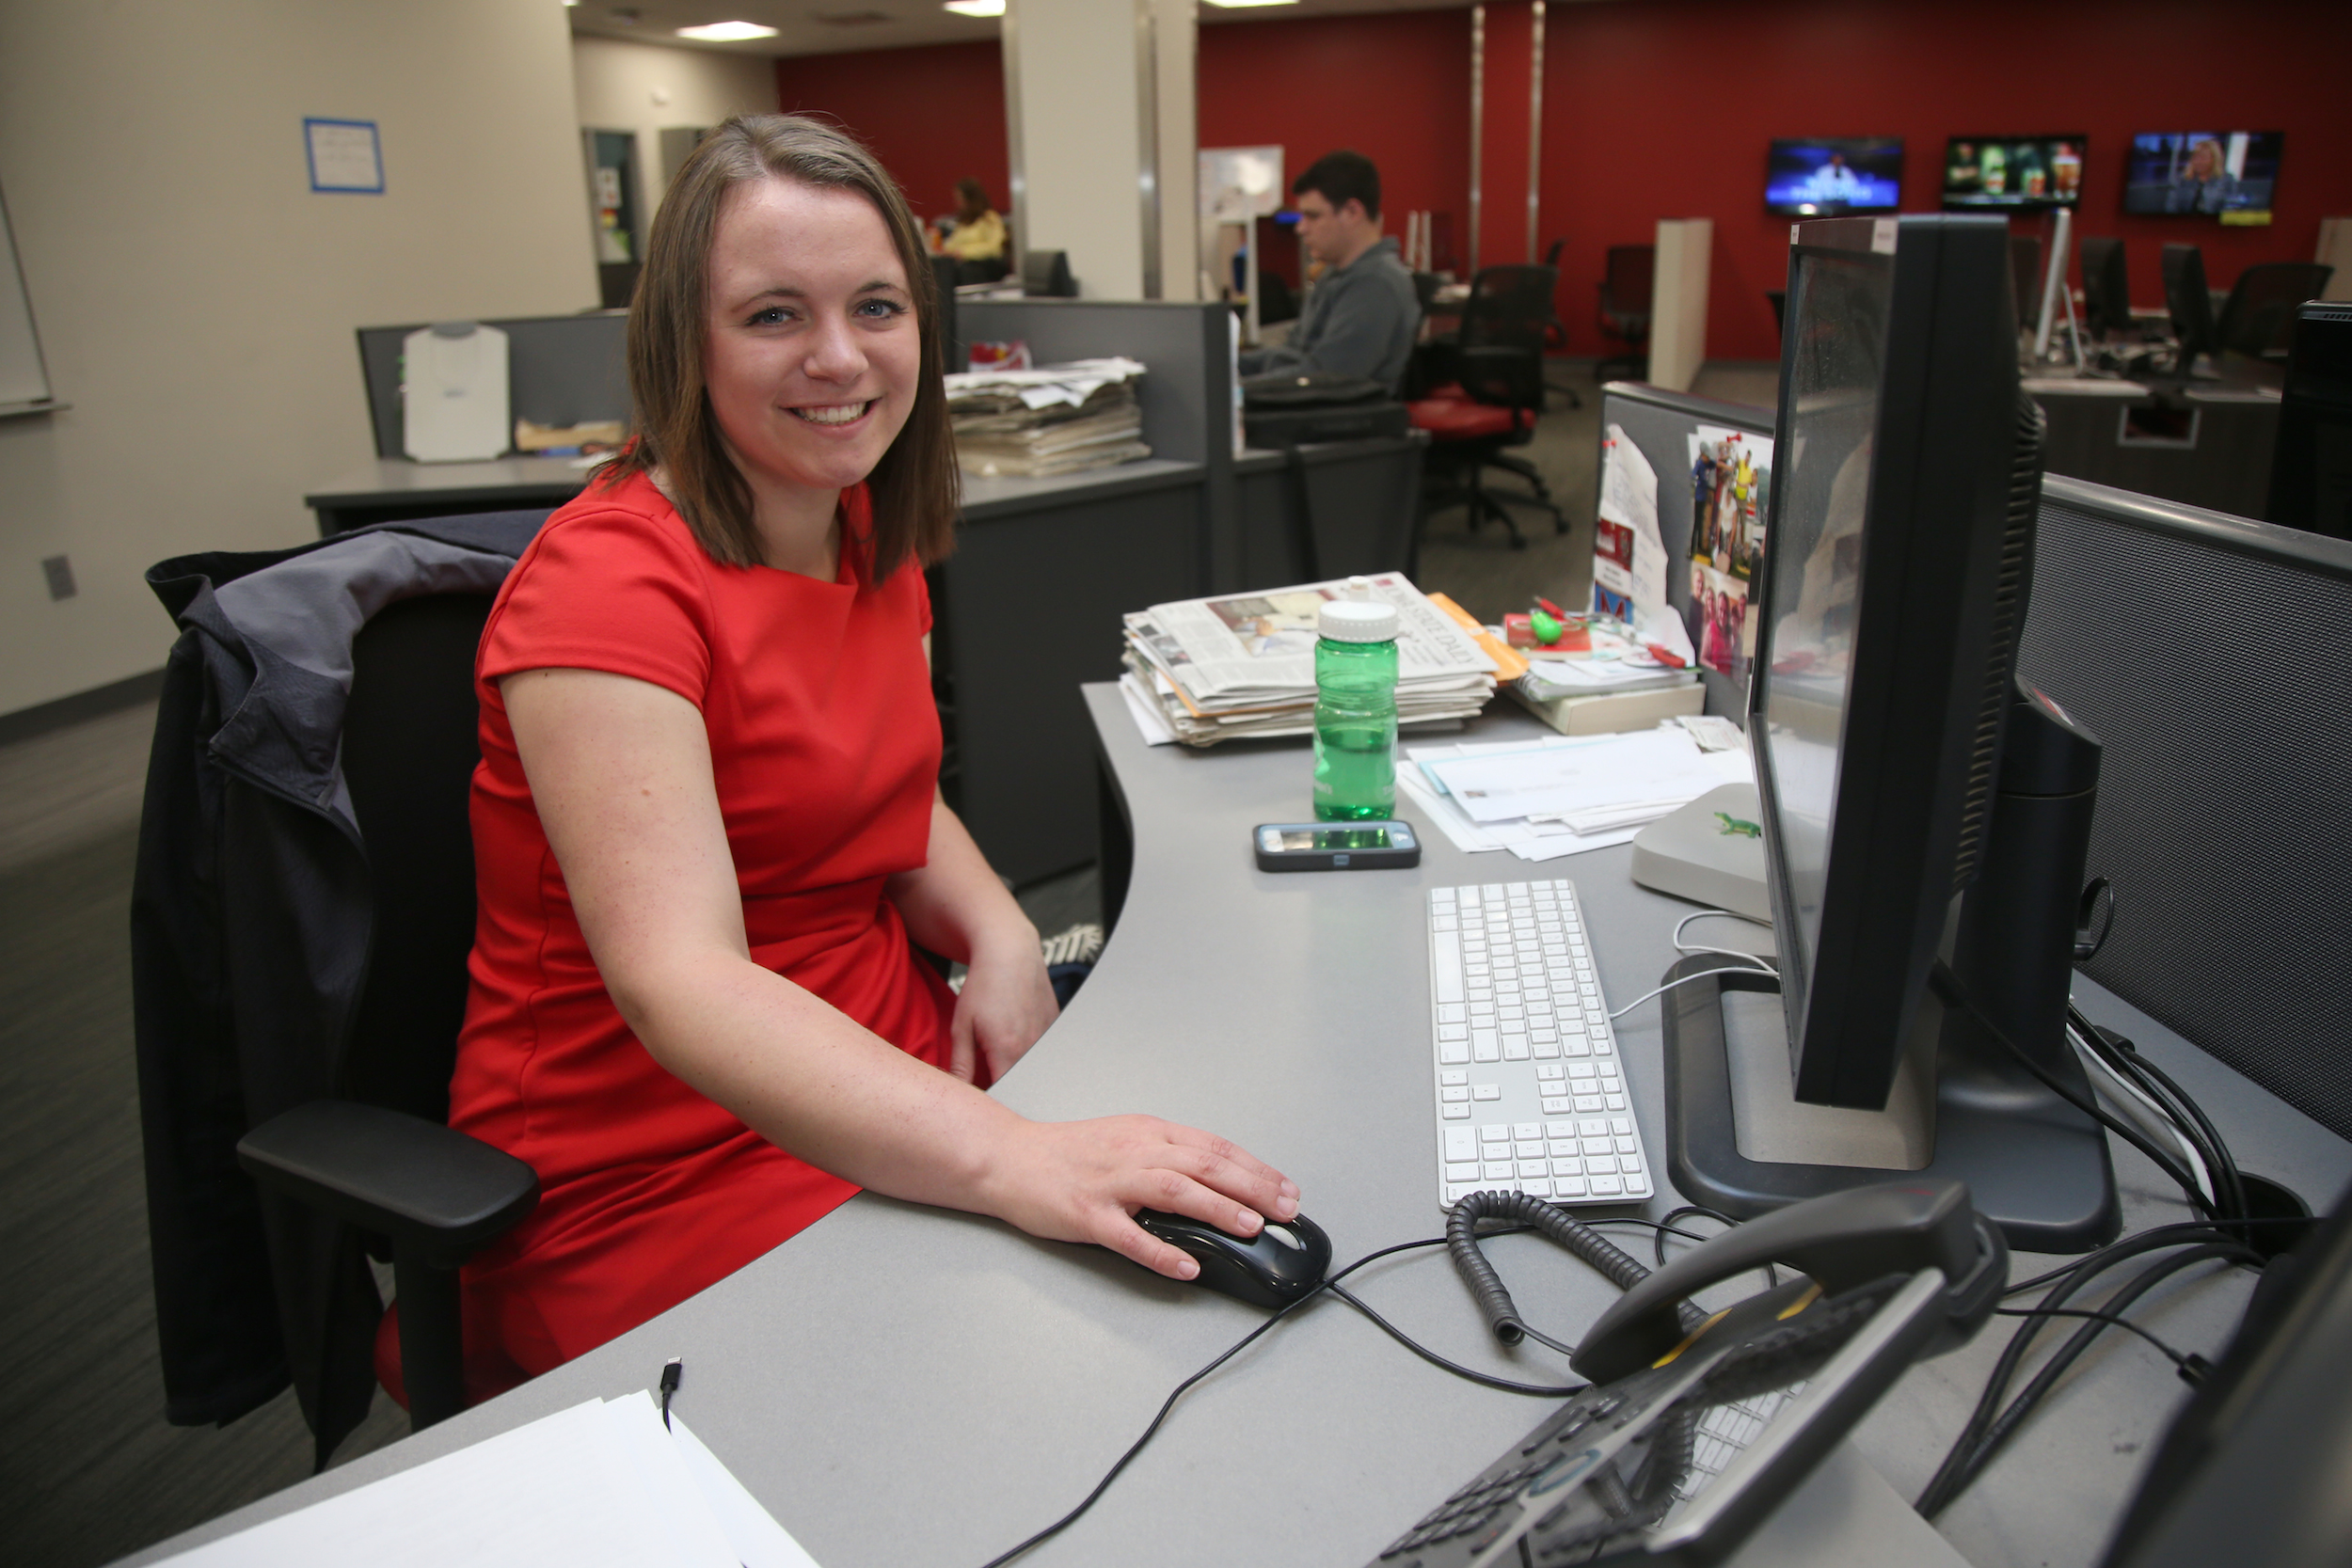 Emily Barske leads a team of writers, editors, photographers, designers and others as editor-in-chief of the Iowa State Daily. (Blake Lanser/Iowa State University.)